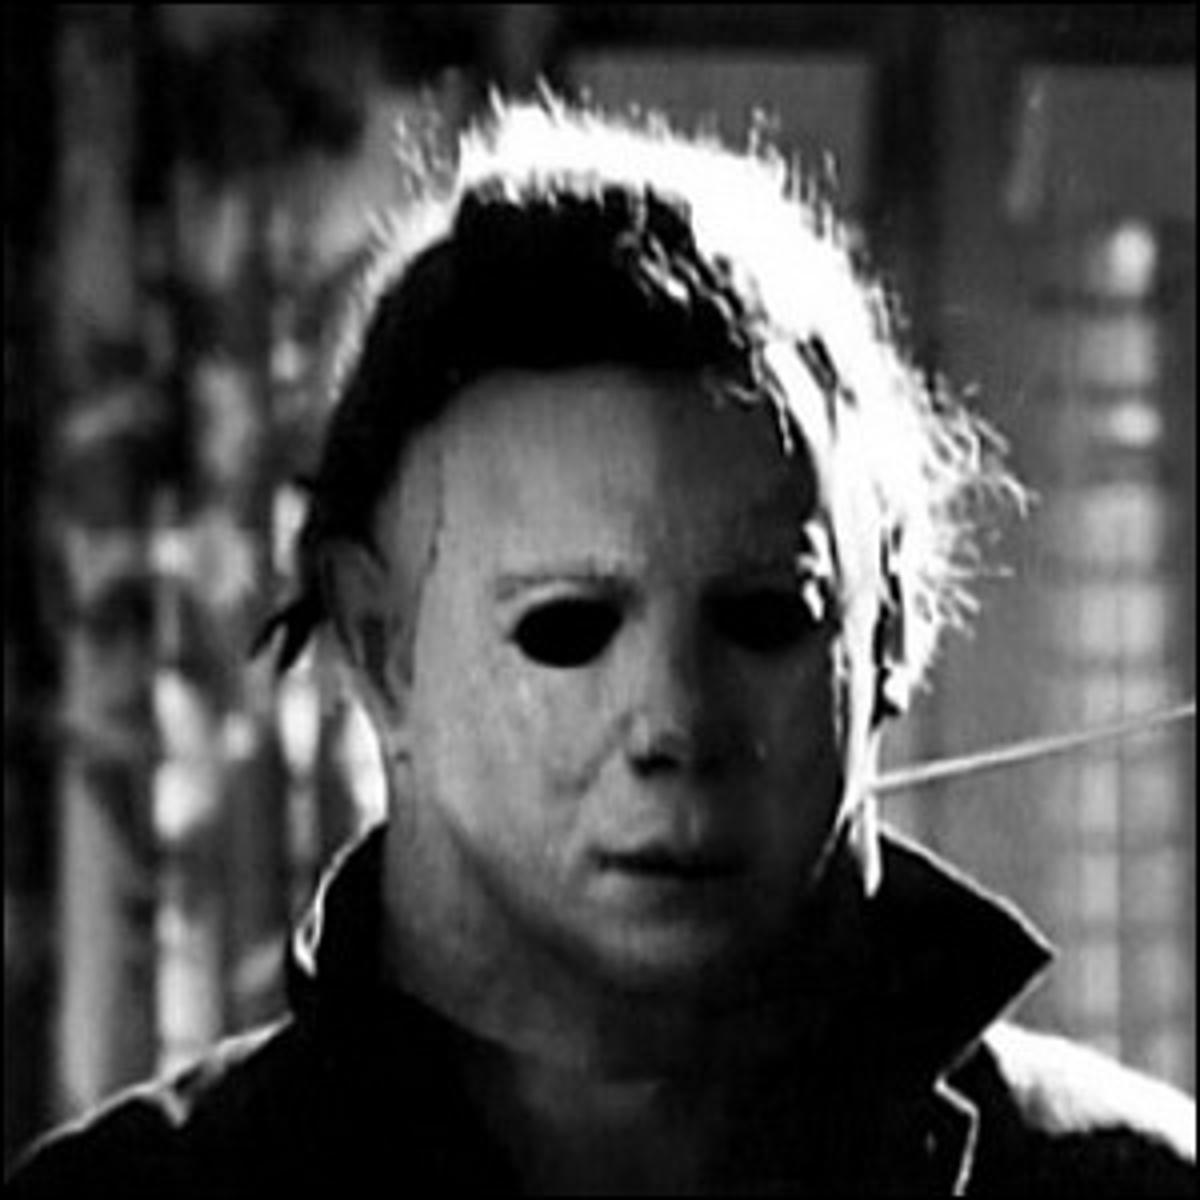 Michael Myers as the antagonist of the movie Halloween.